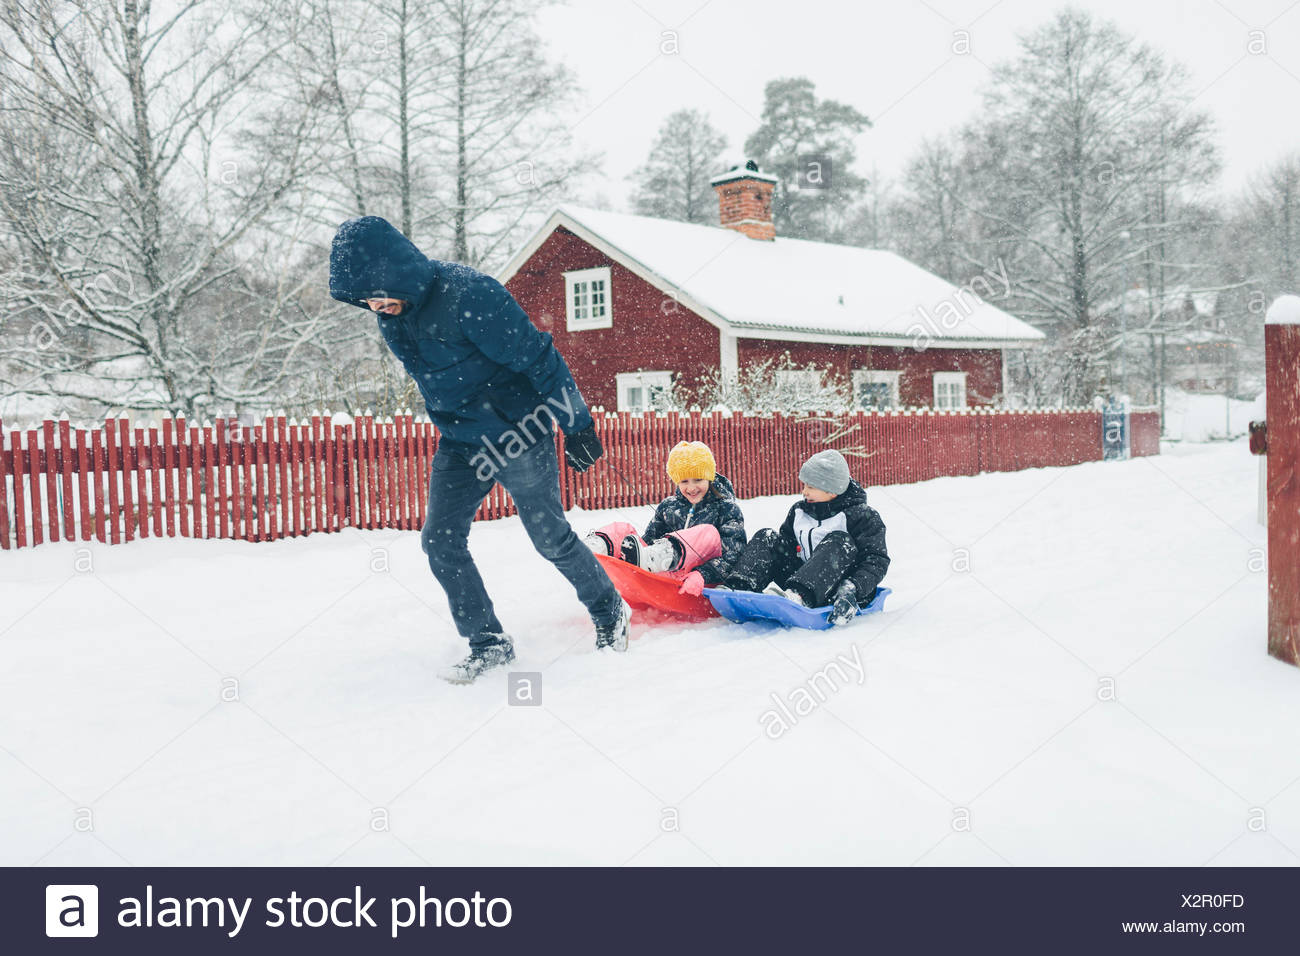 Man pulling children on sled - Stock Image